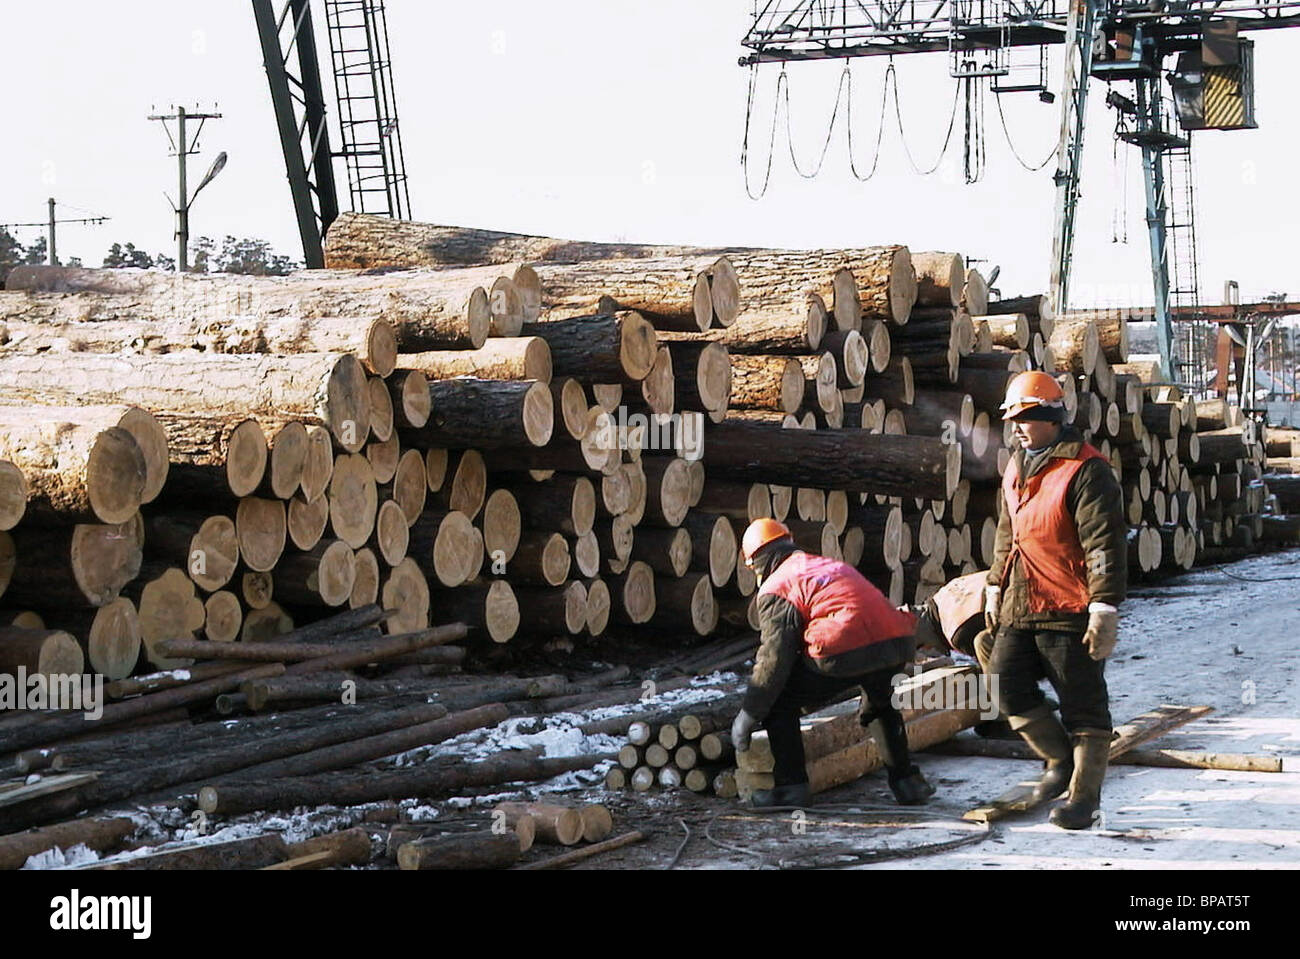 Siberian timber for shipment to China - Stock Image